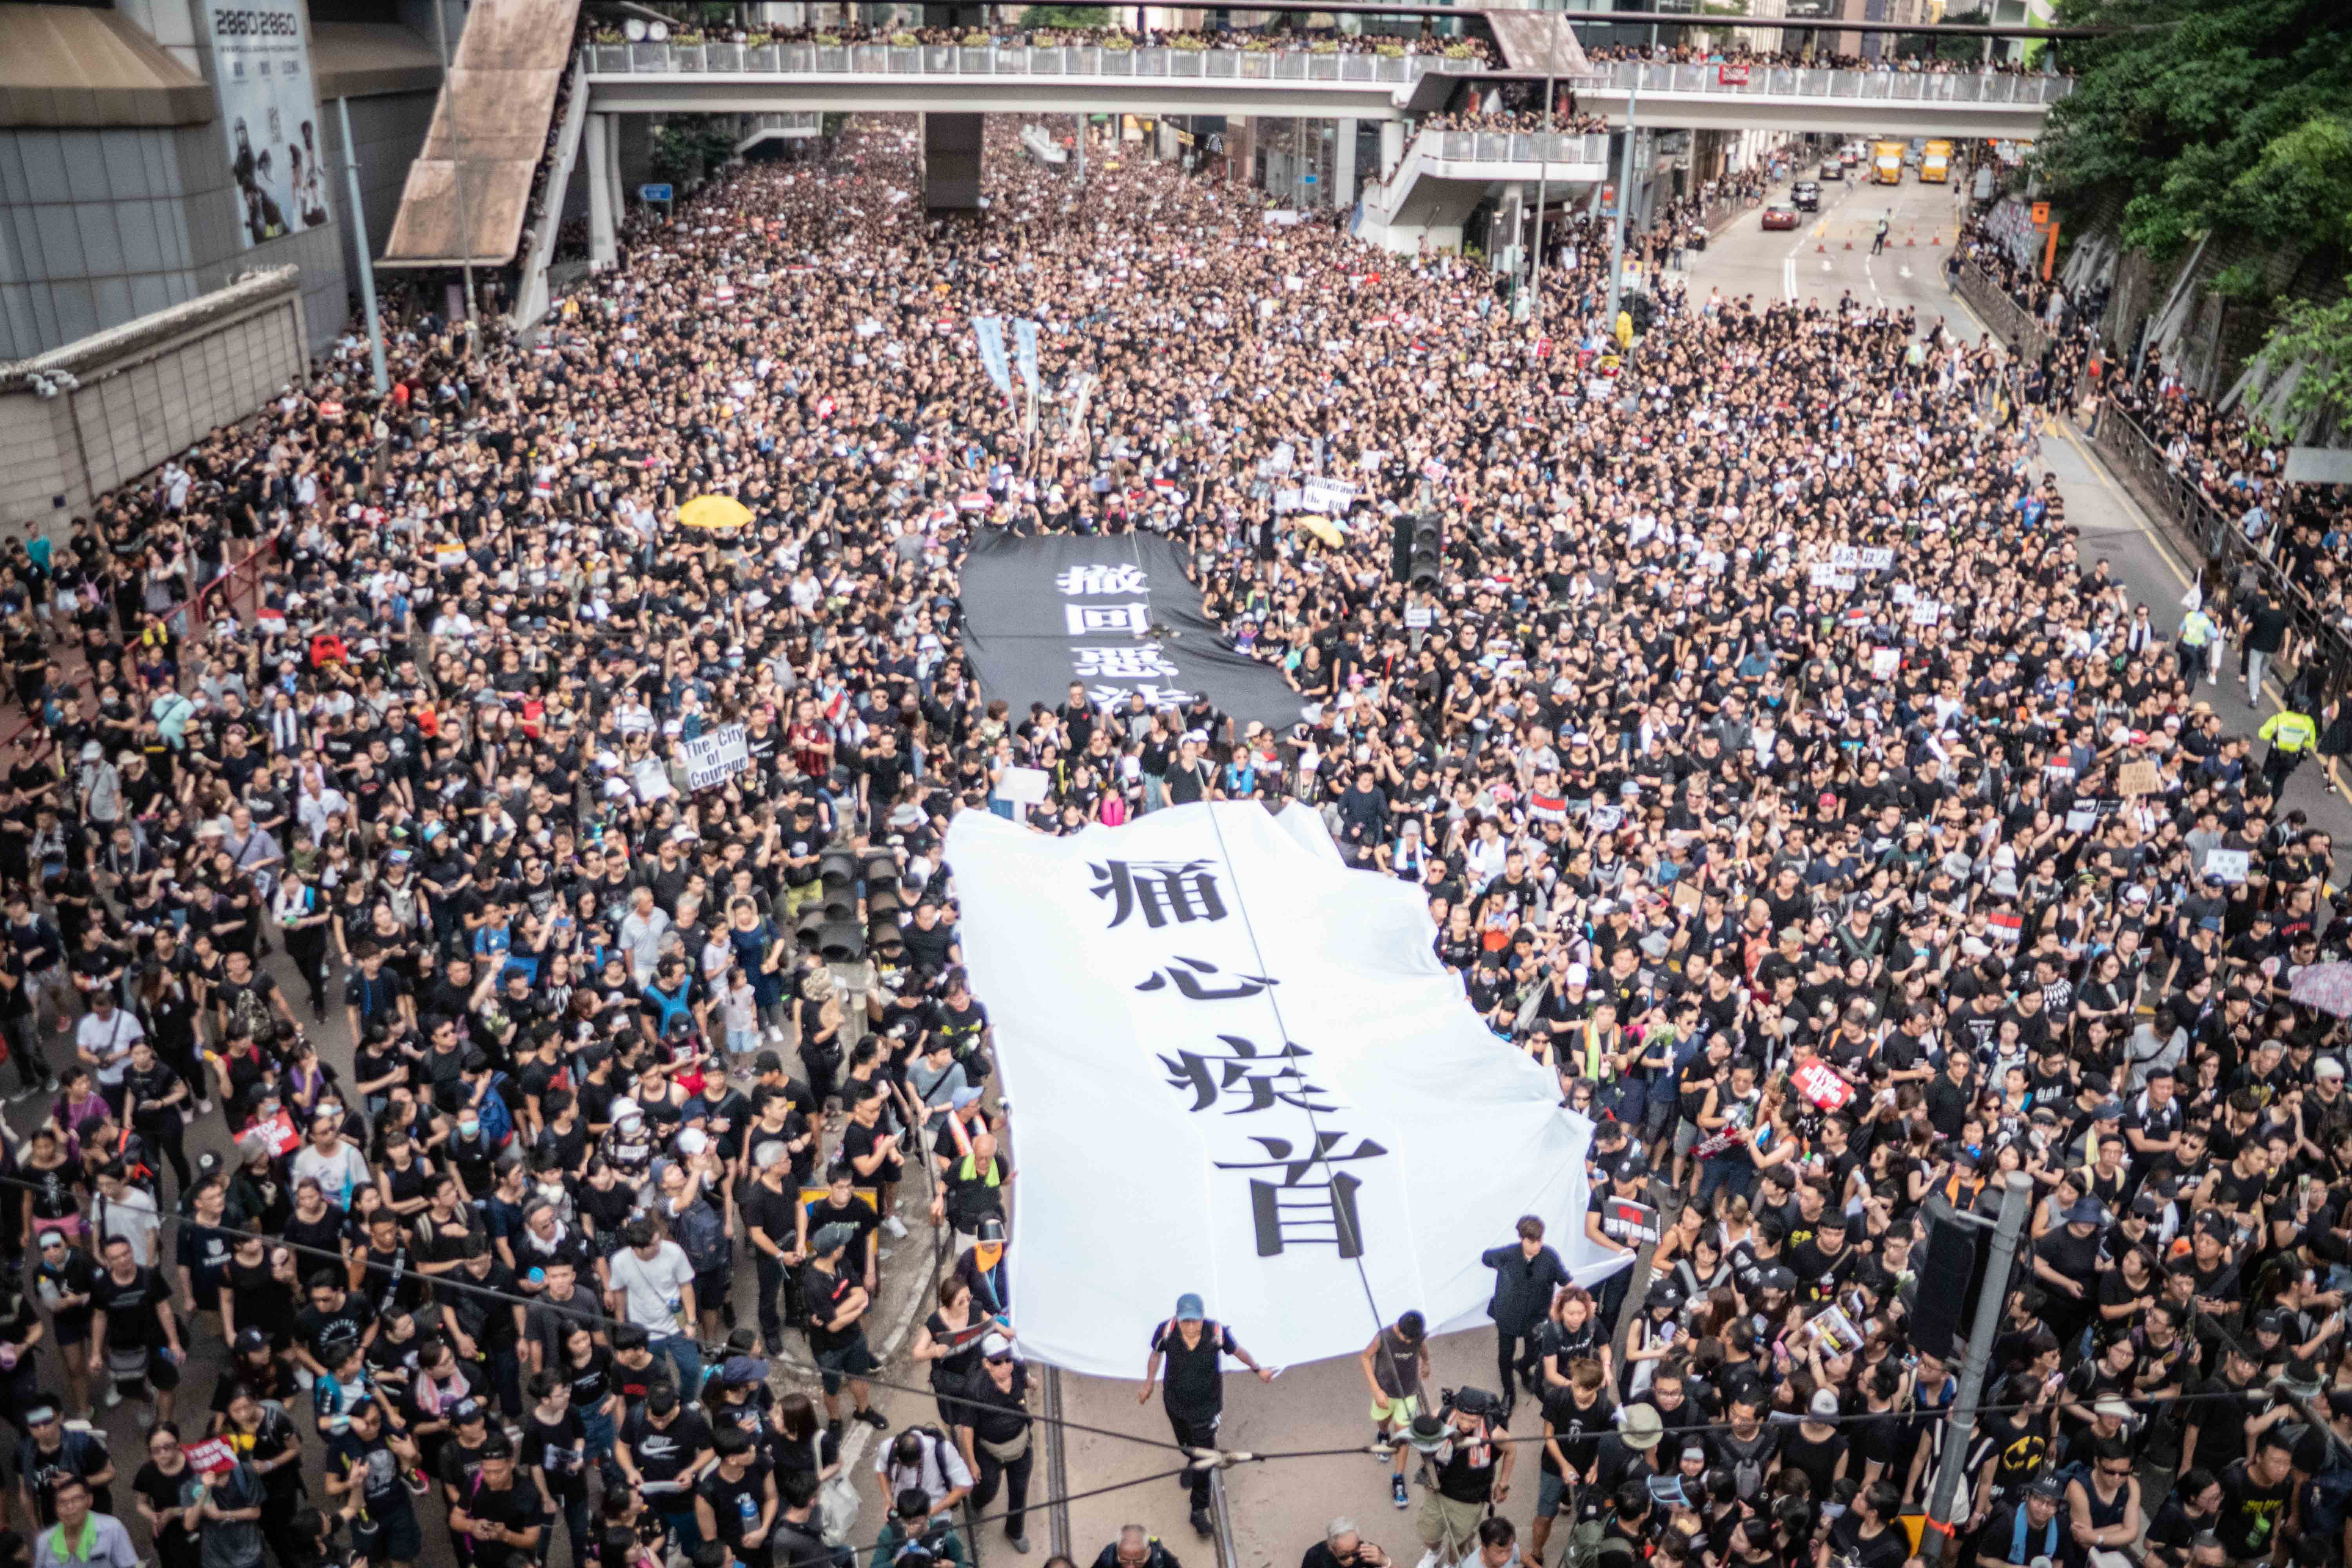 List of August 2019 Hong Kong anti-extradition bill protests